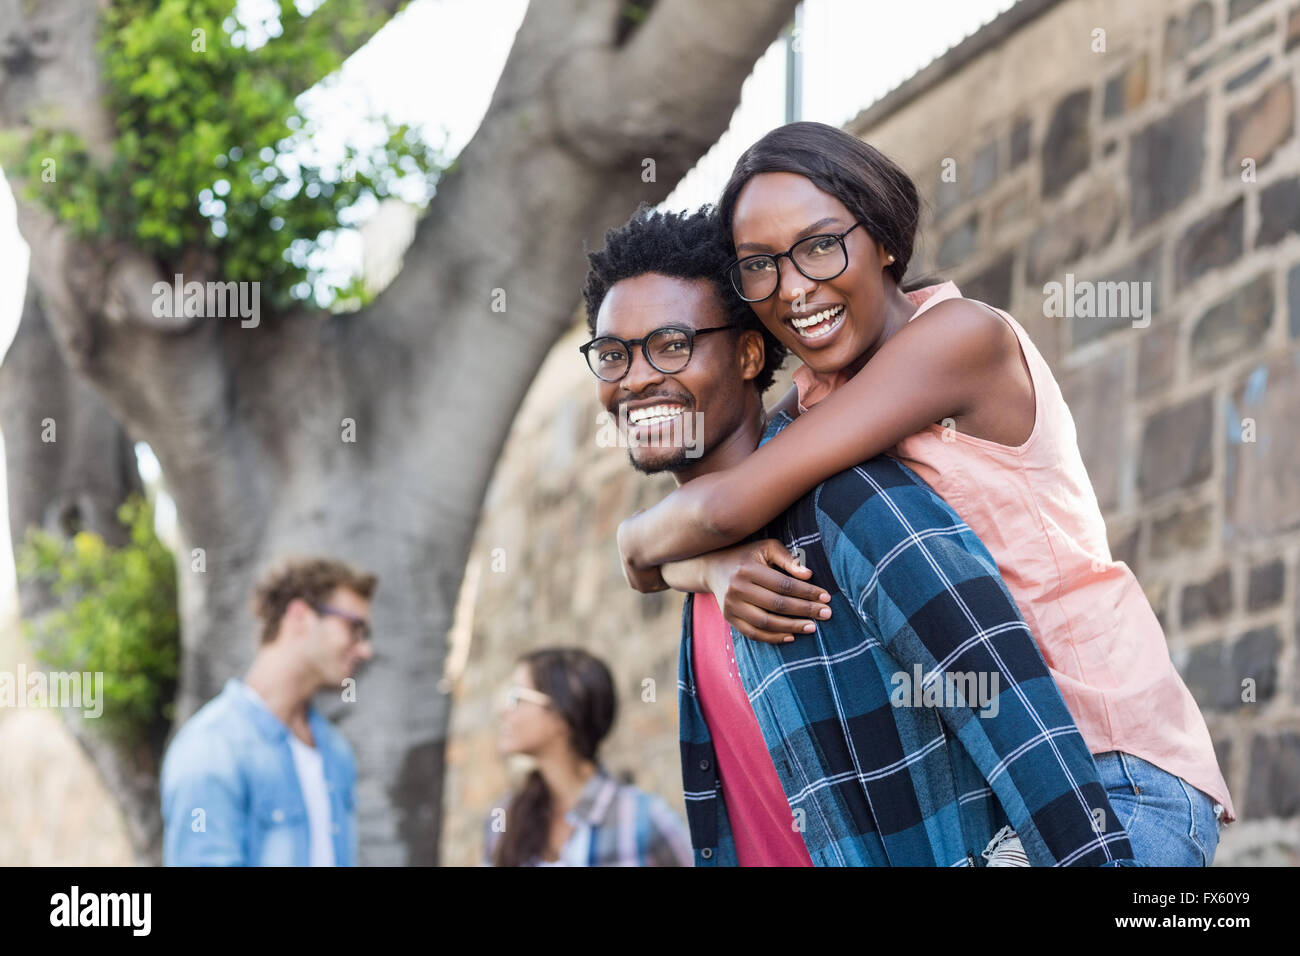 Young man giving piggyback to woman - Stock Image